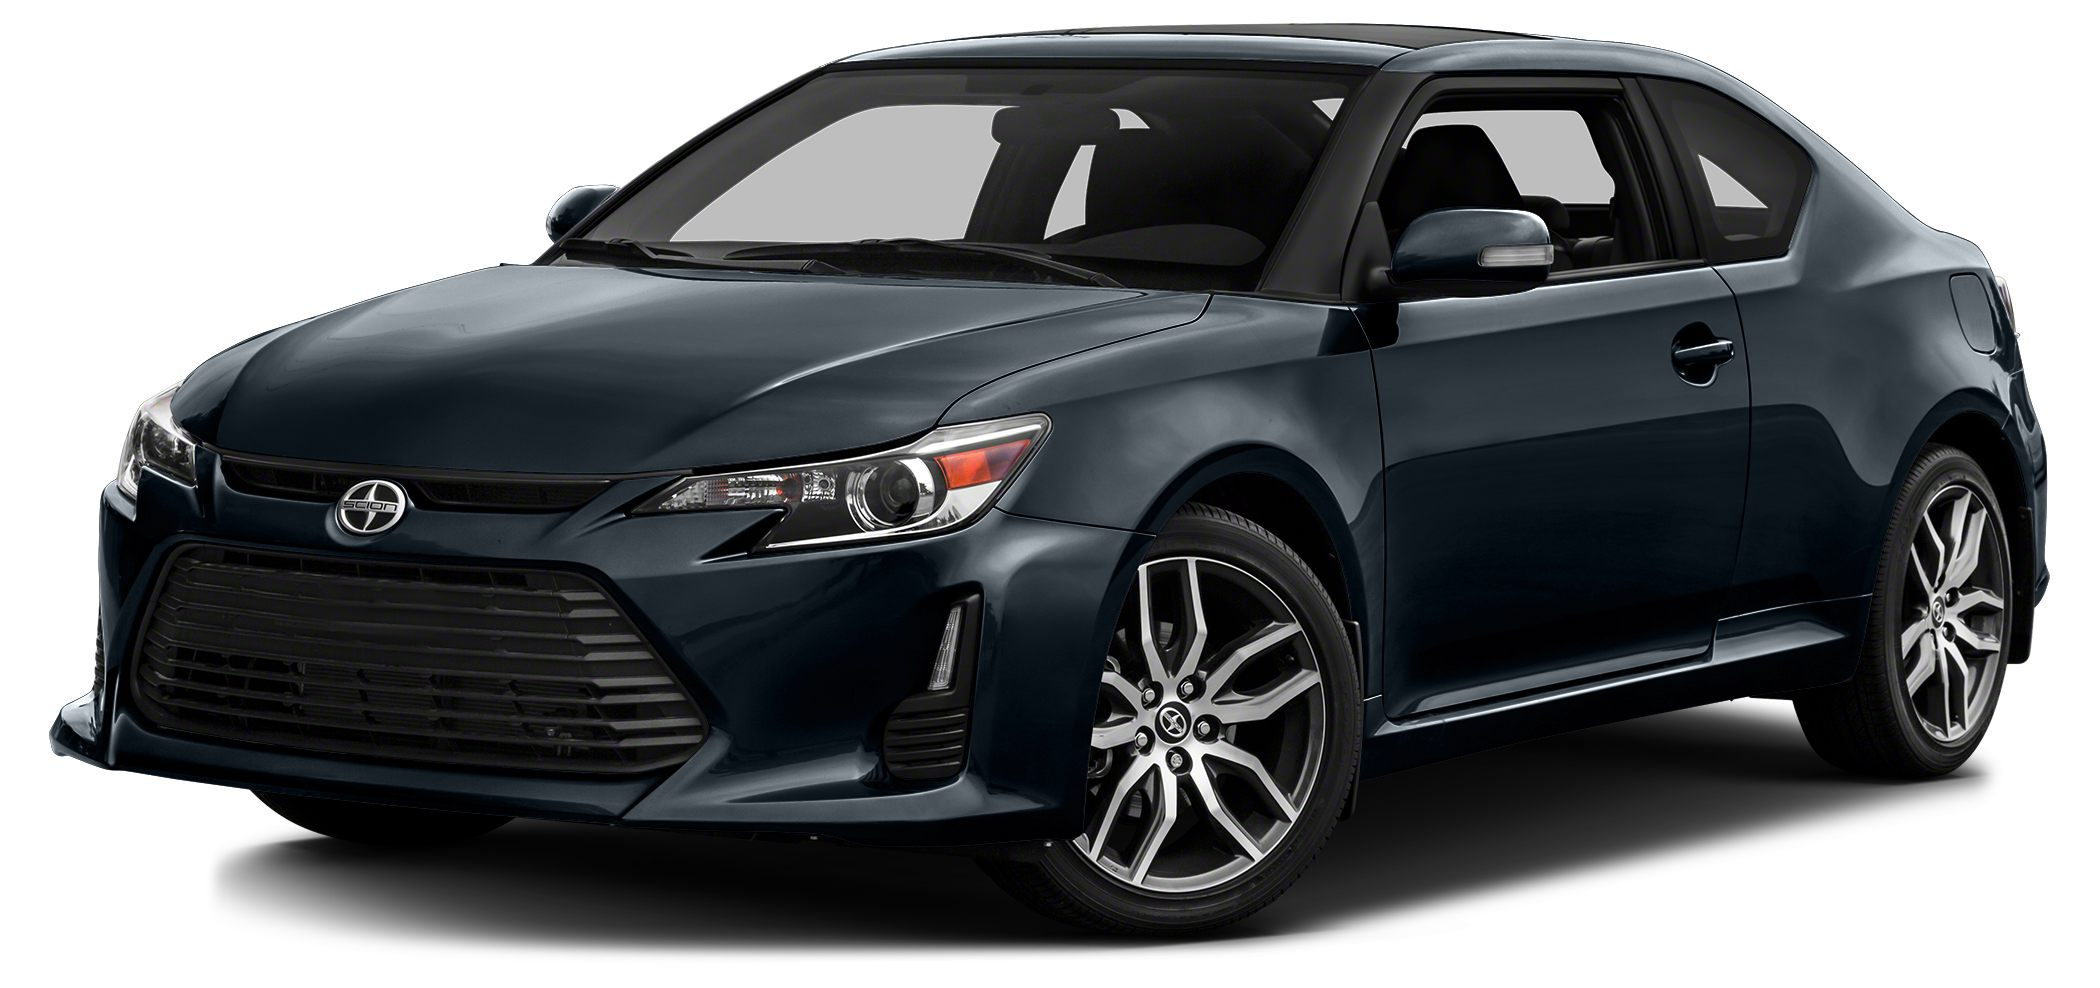 2016 Scion tC Base Westboro Toyota is proud to present HASSLE FREE BUYING EXPERIENCE with upfront